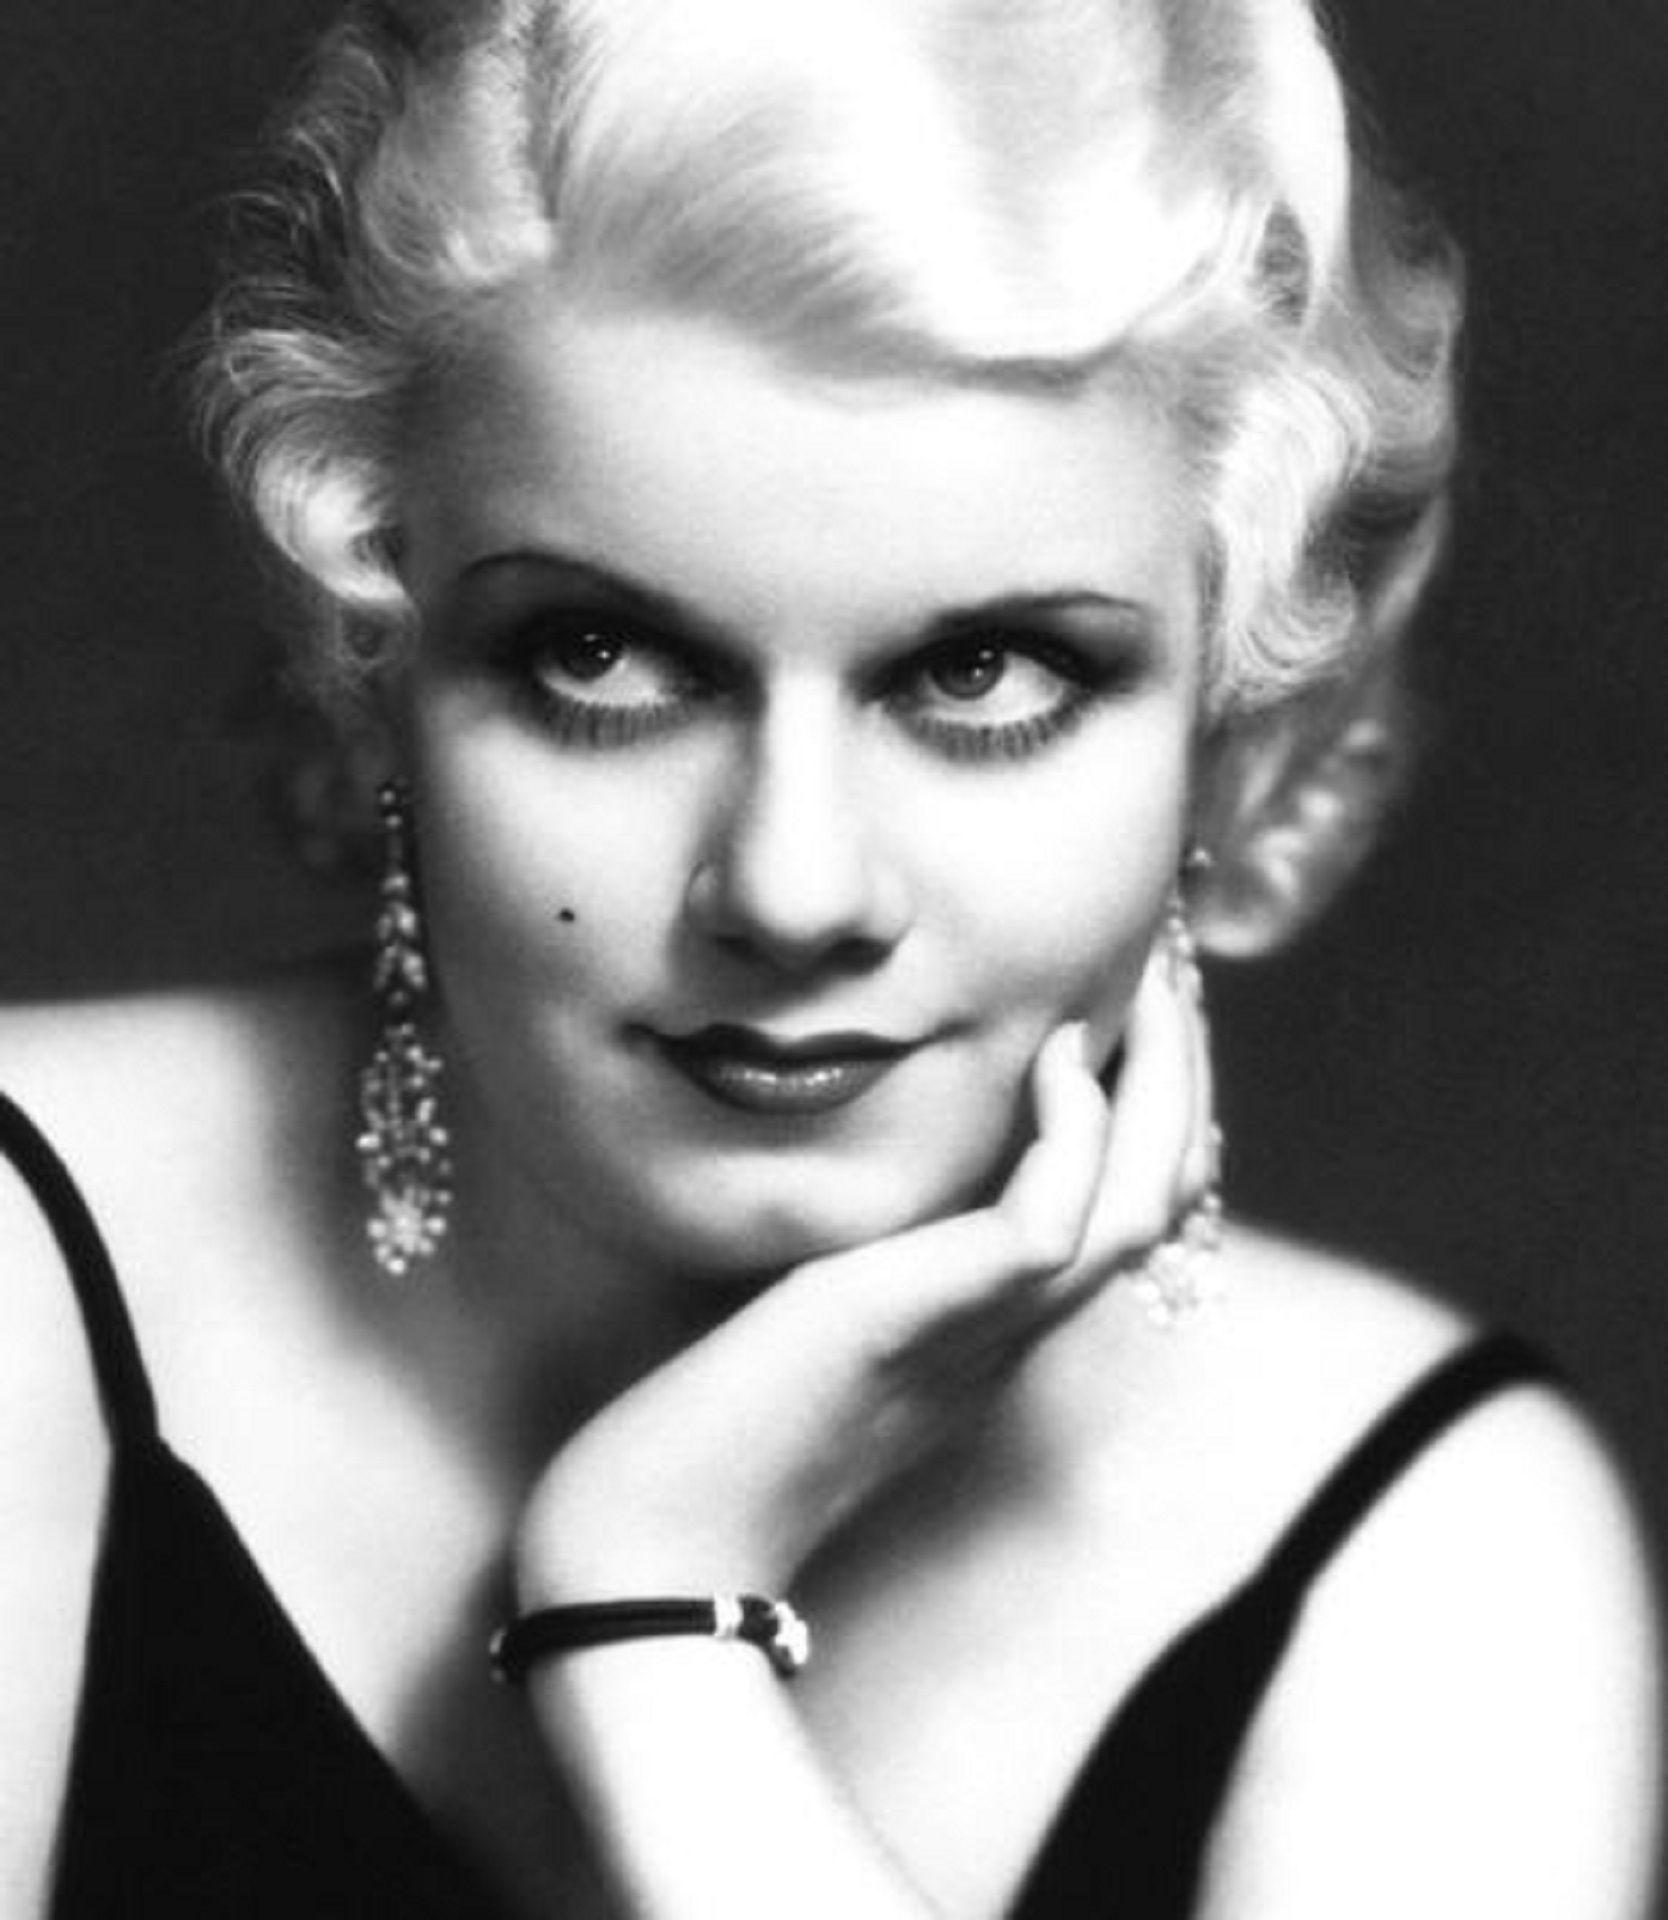 Jean Harlow, Producer, Television, Jean, Film, HQ Photo